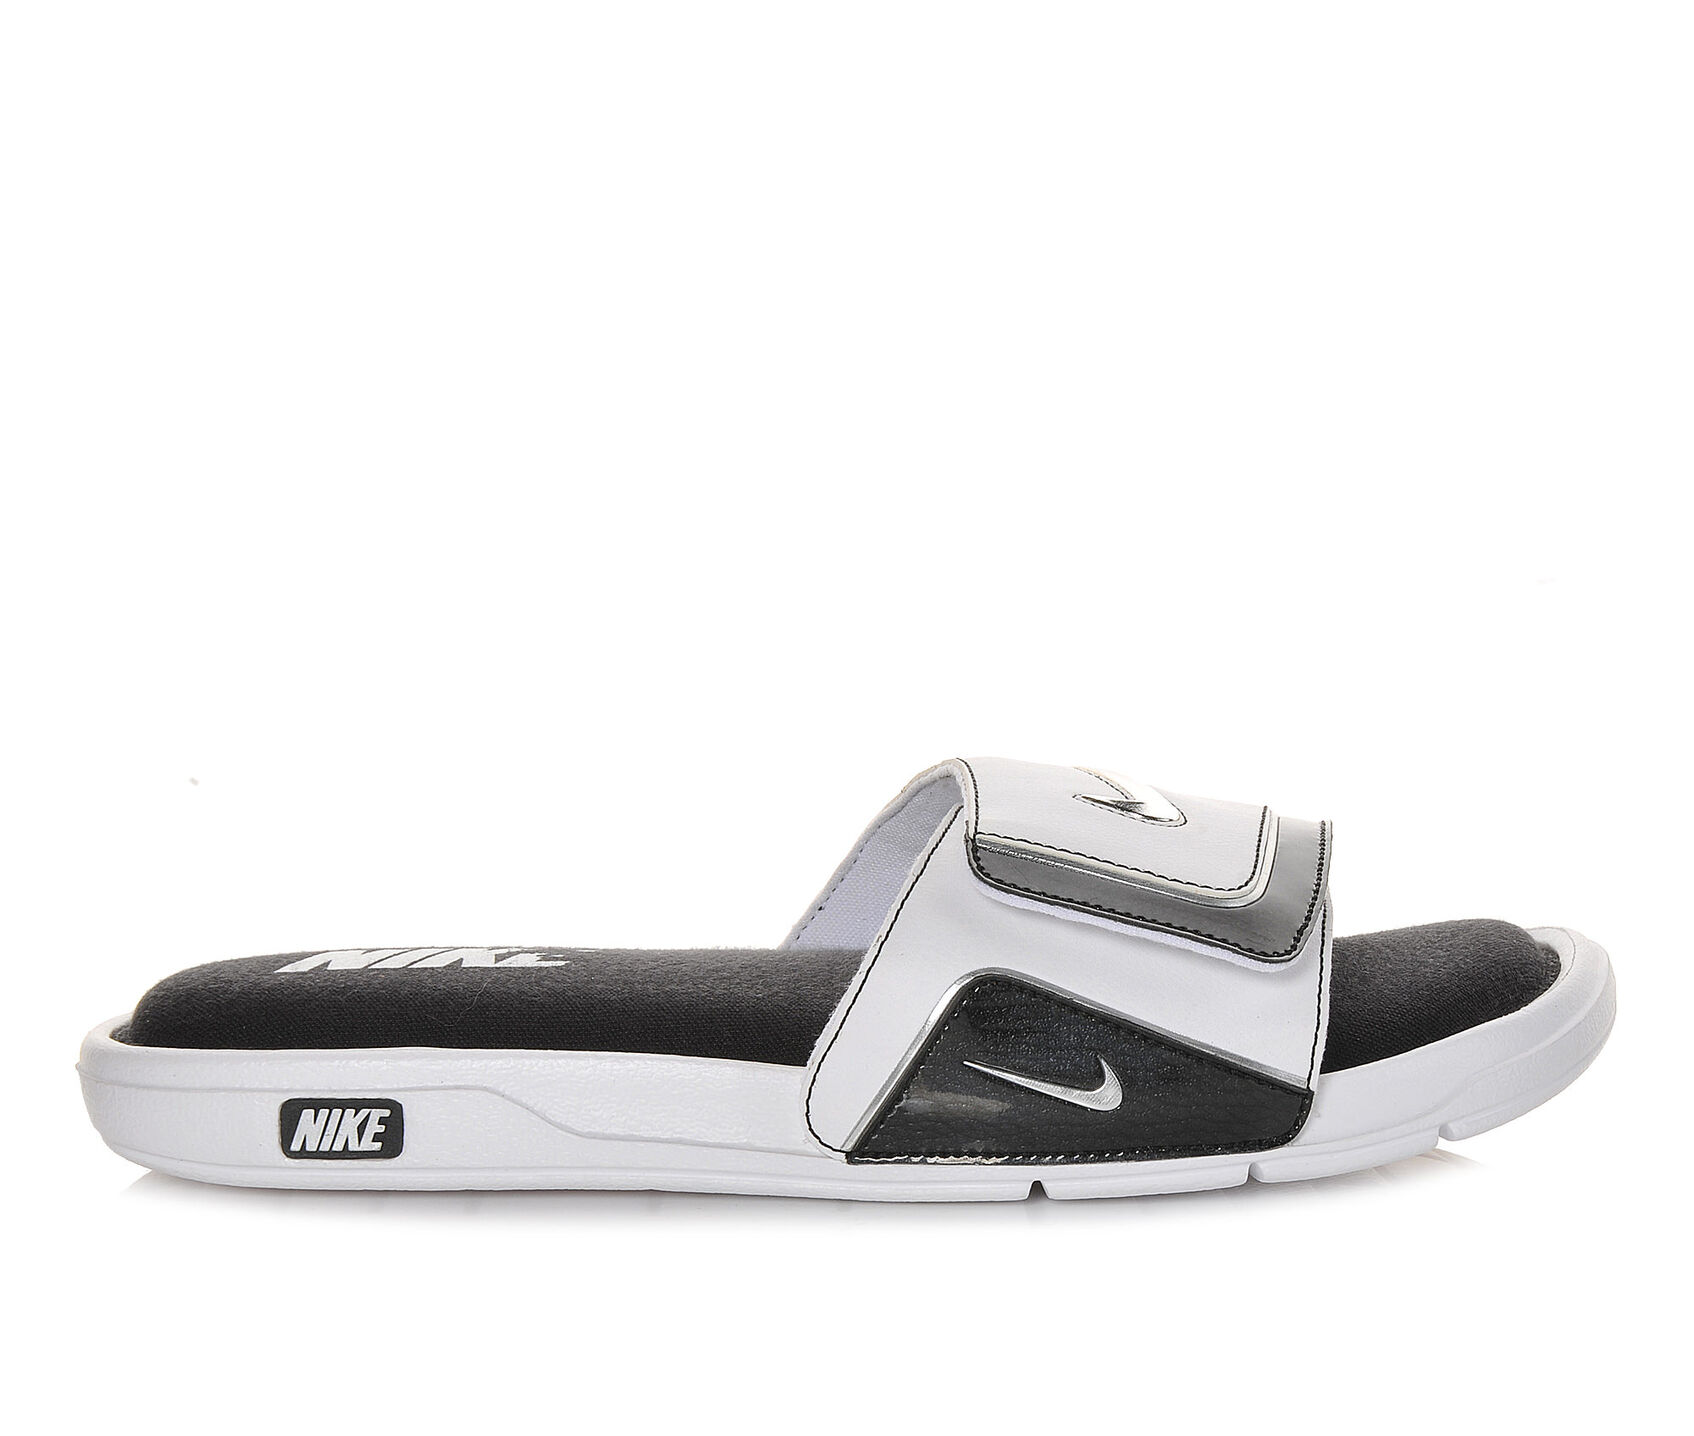 low priced 0c229 56d9c ... Nike Comfort Slide 2 Sport Slides. Previous